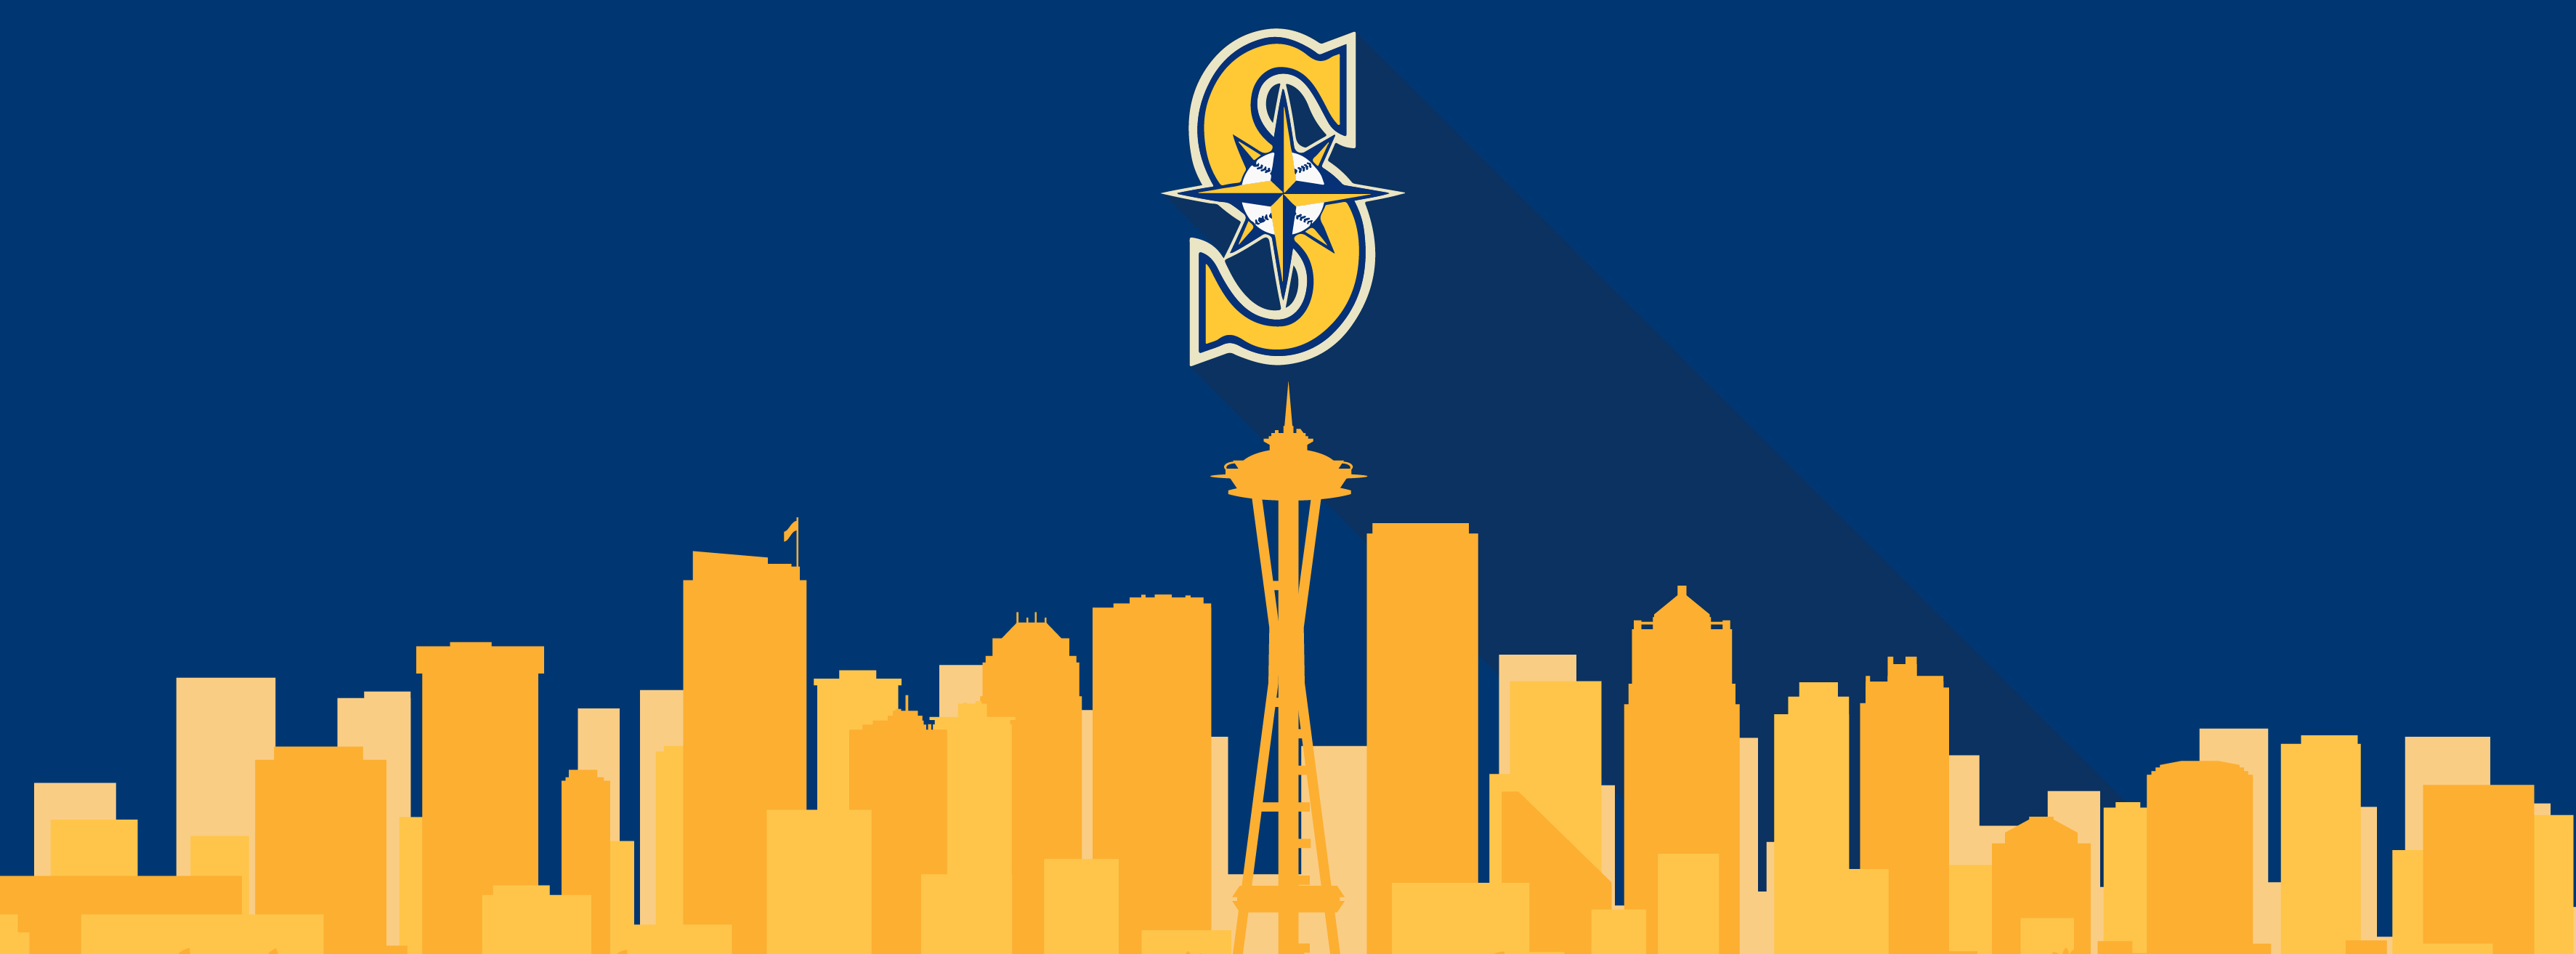 Sunday Alternate Wallpapers. Enjoy! : Mariners